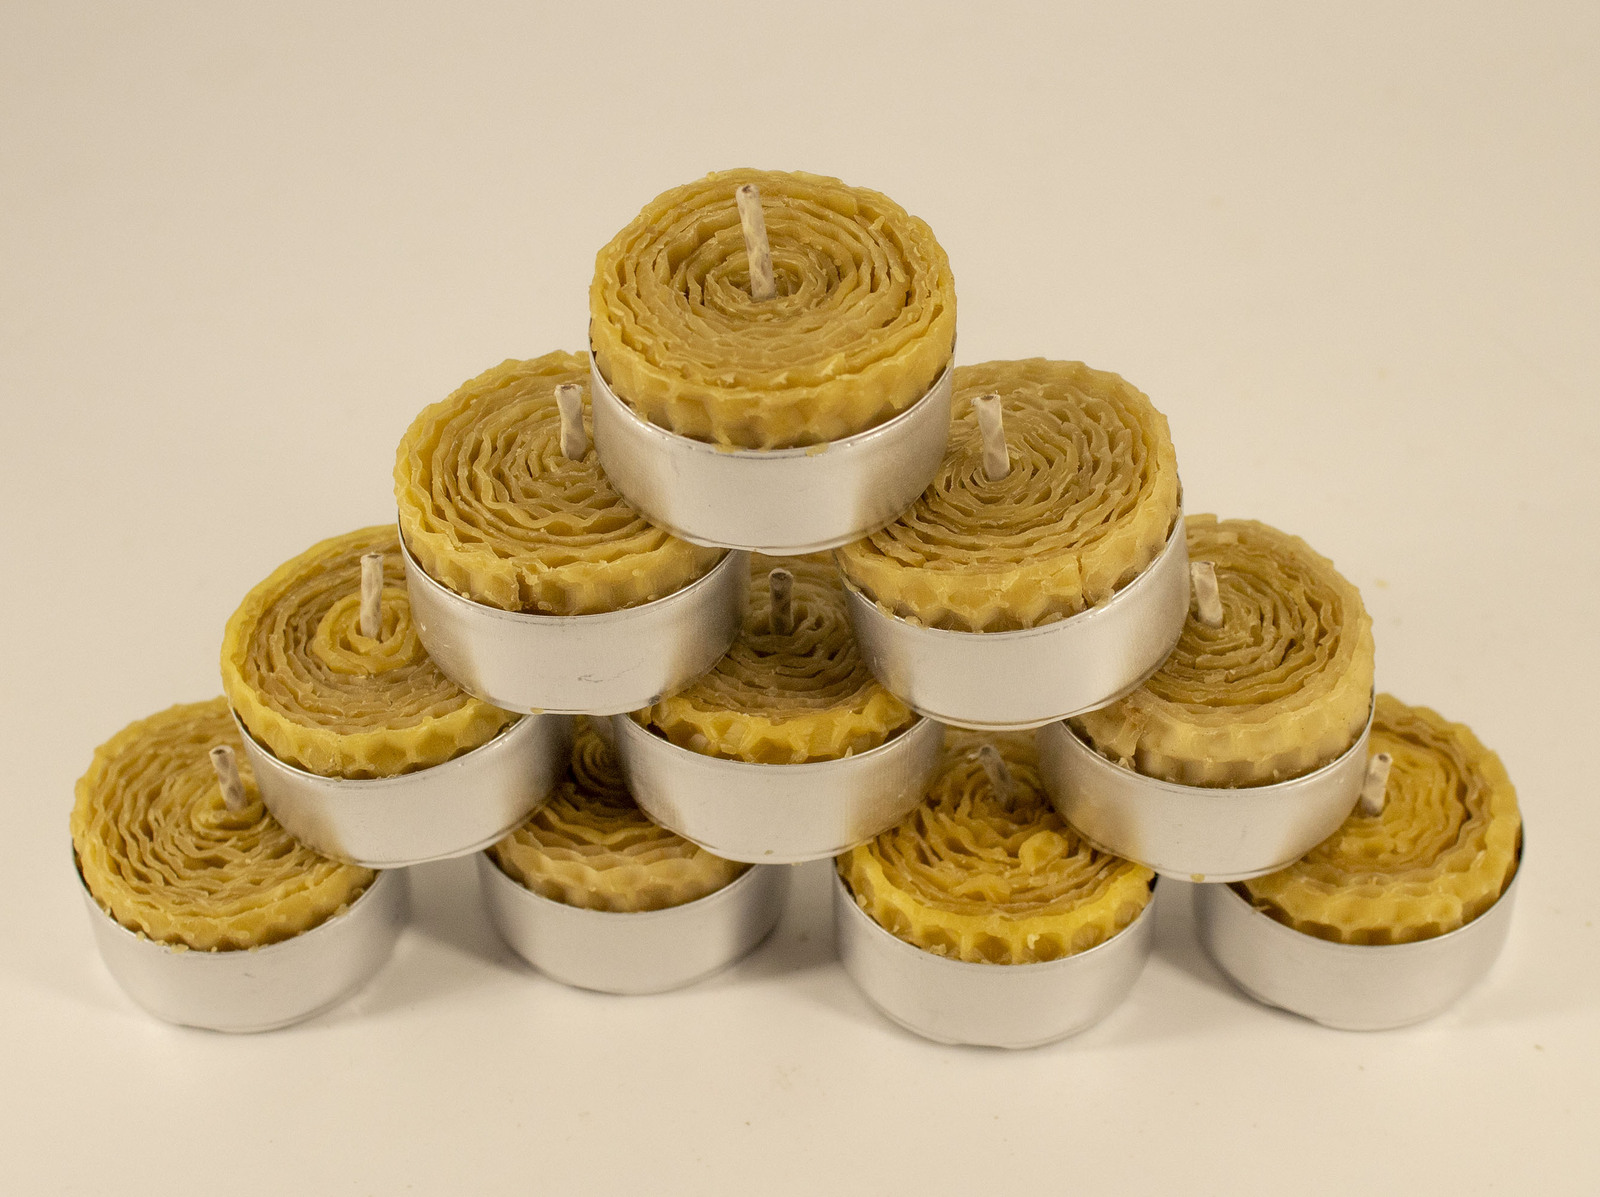 Primary image for 10 pcs. 100% pure beeswax tealight 3,5 x 2 cm